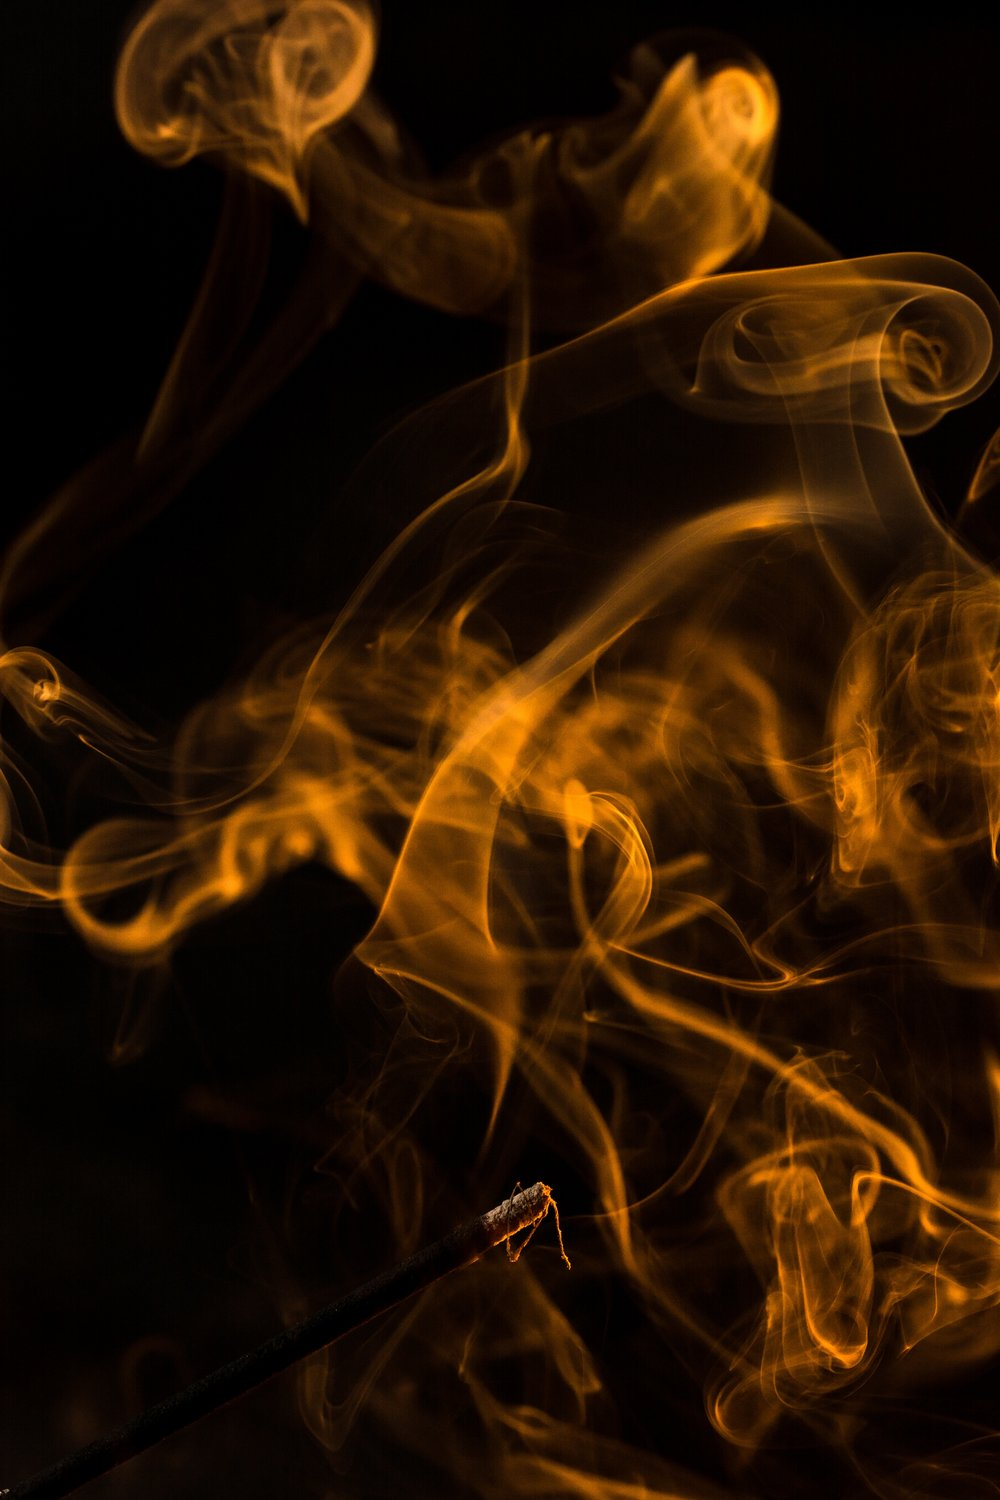 Whisps of orange smoke swirl against a black background